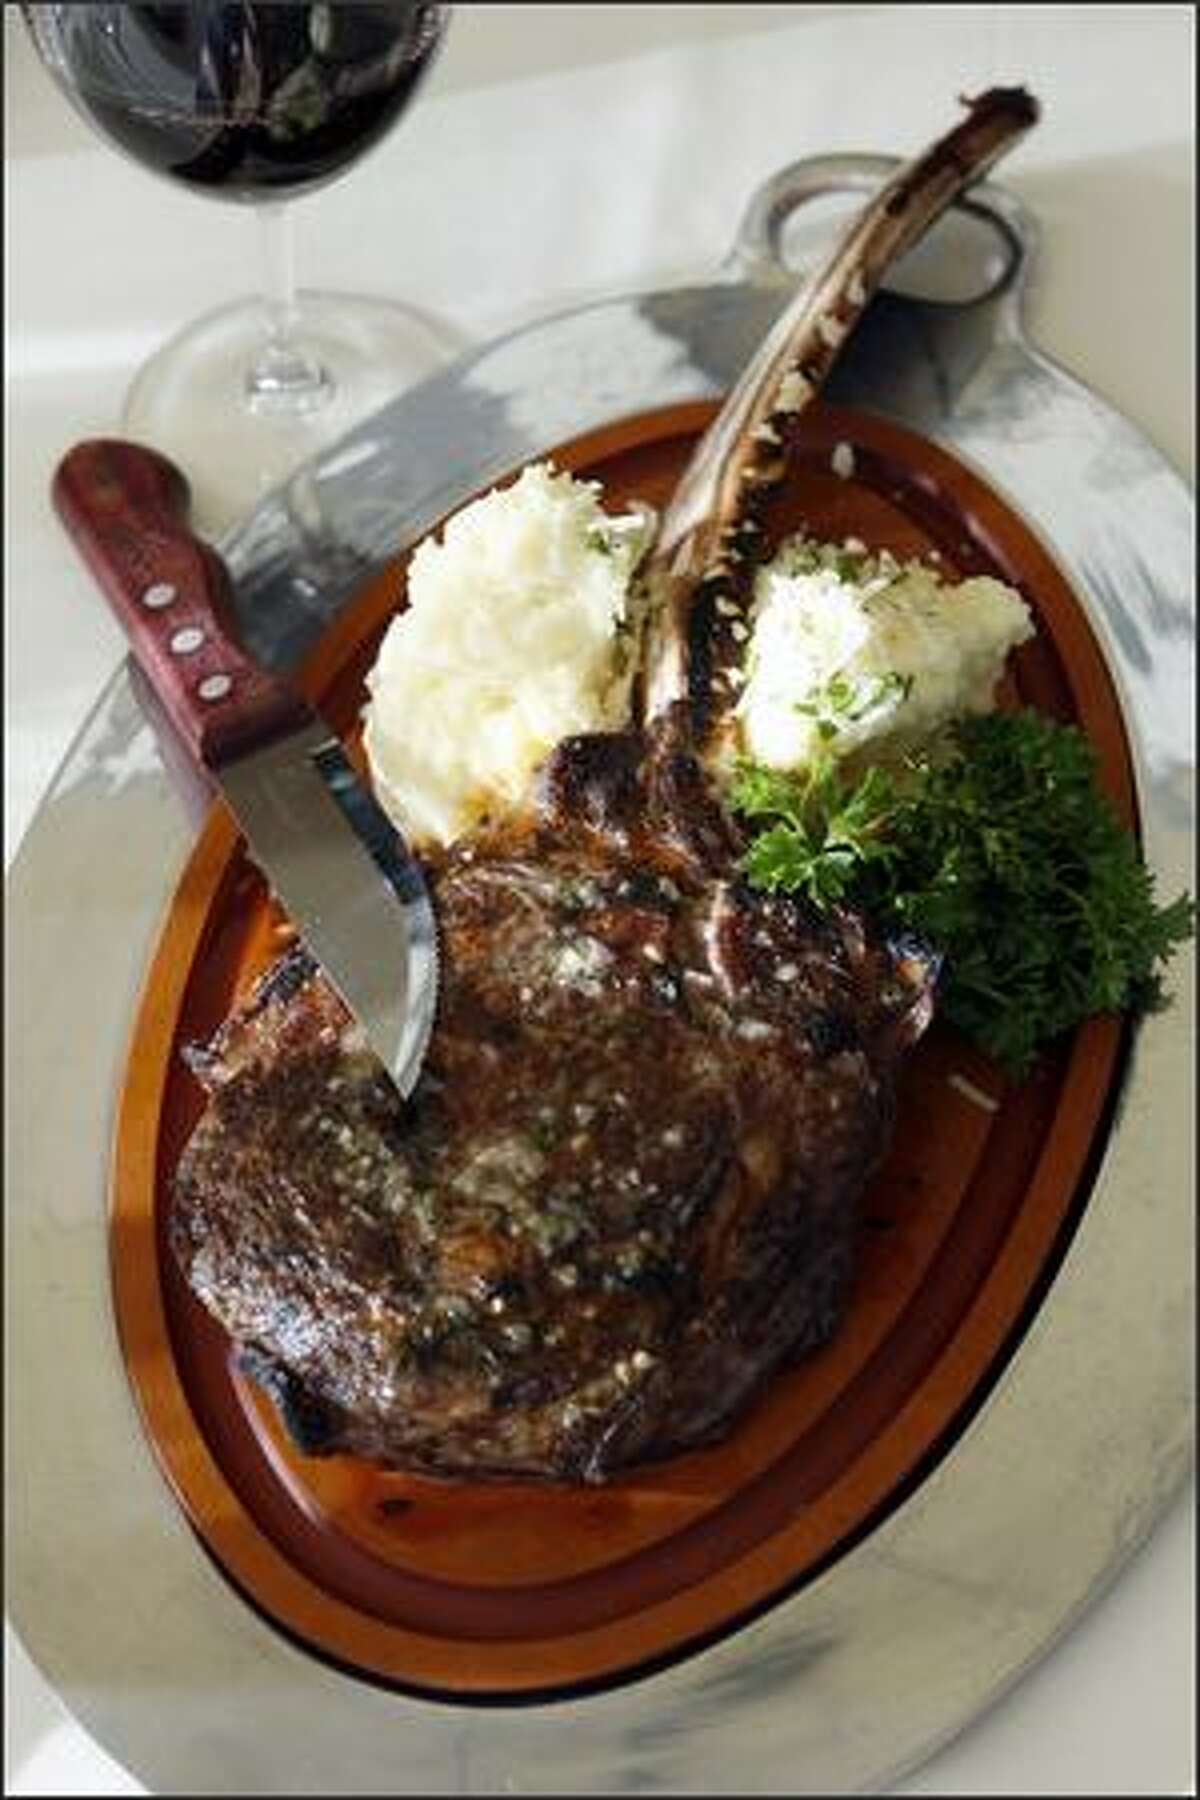 A 36- to 38-ounce double-cut bone-in rib chop at Daniel's. If you need more, go for the